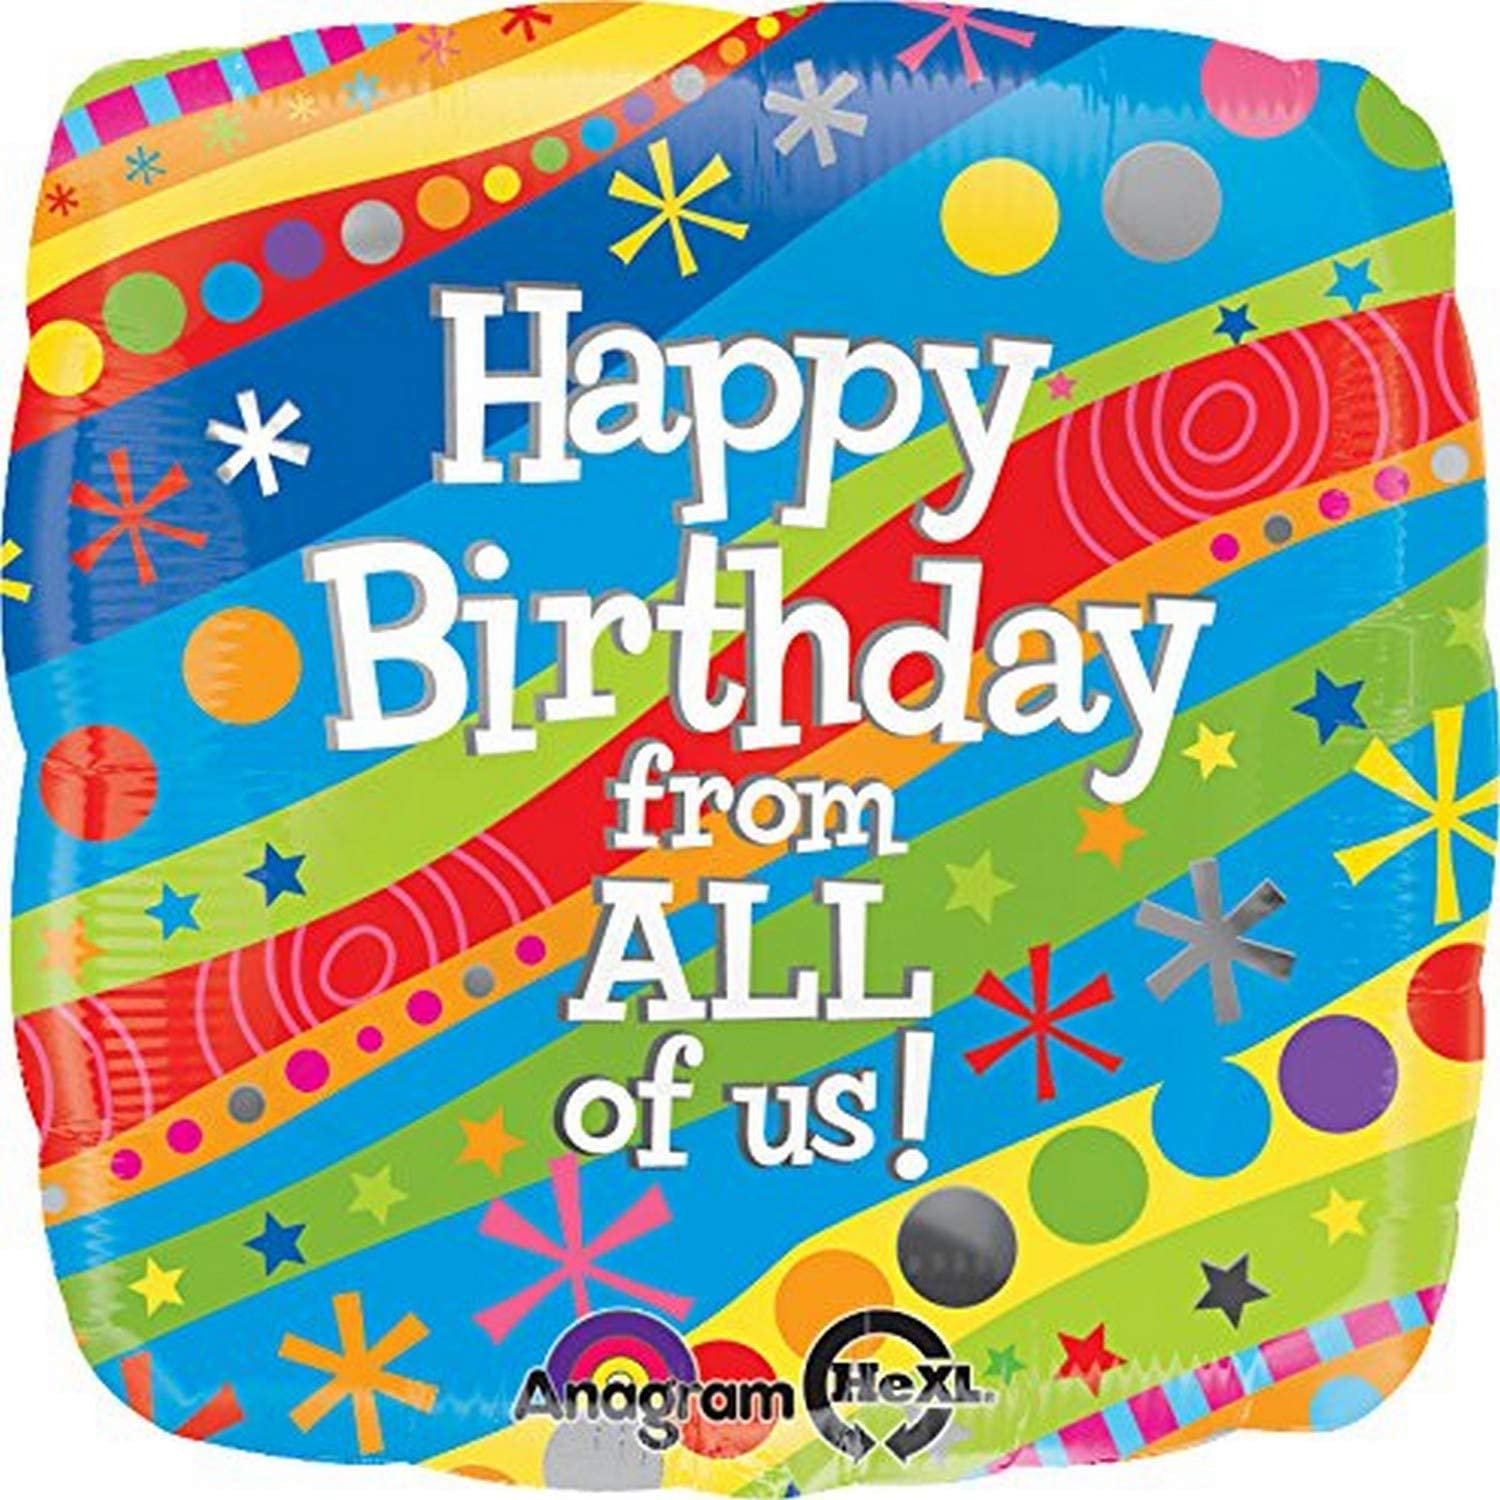 Anagram International Hx Happy Birthday from All of Us Balloon Multicolor